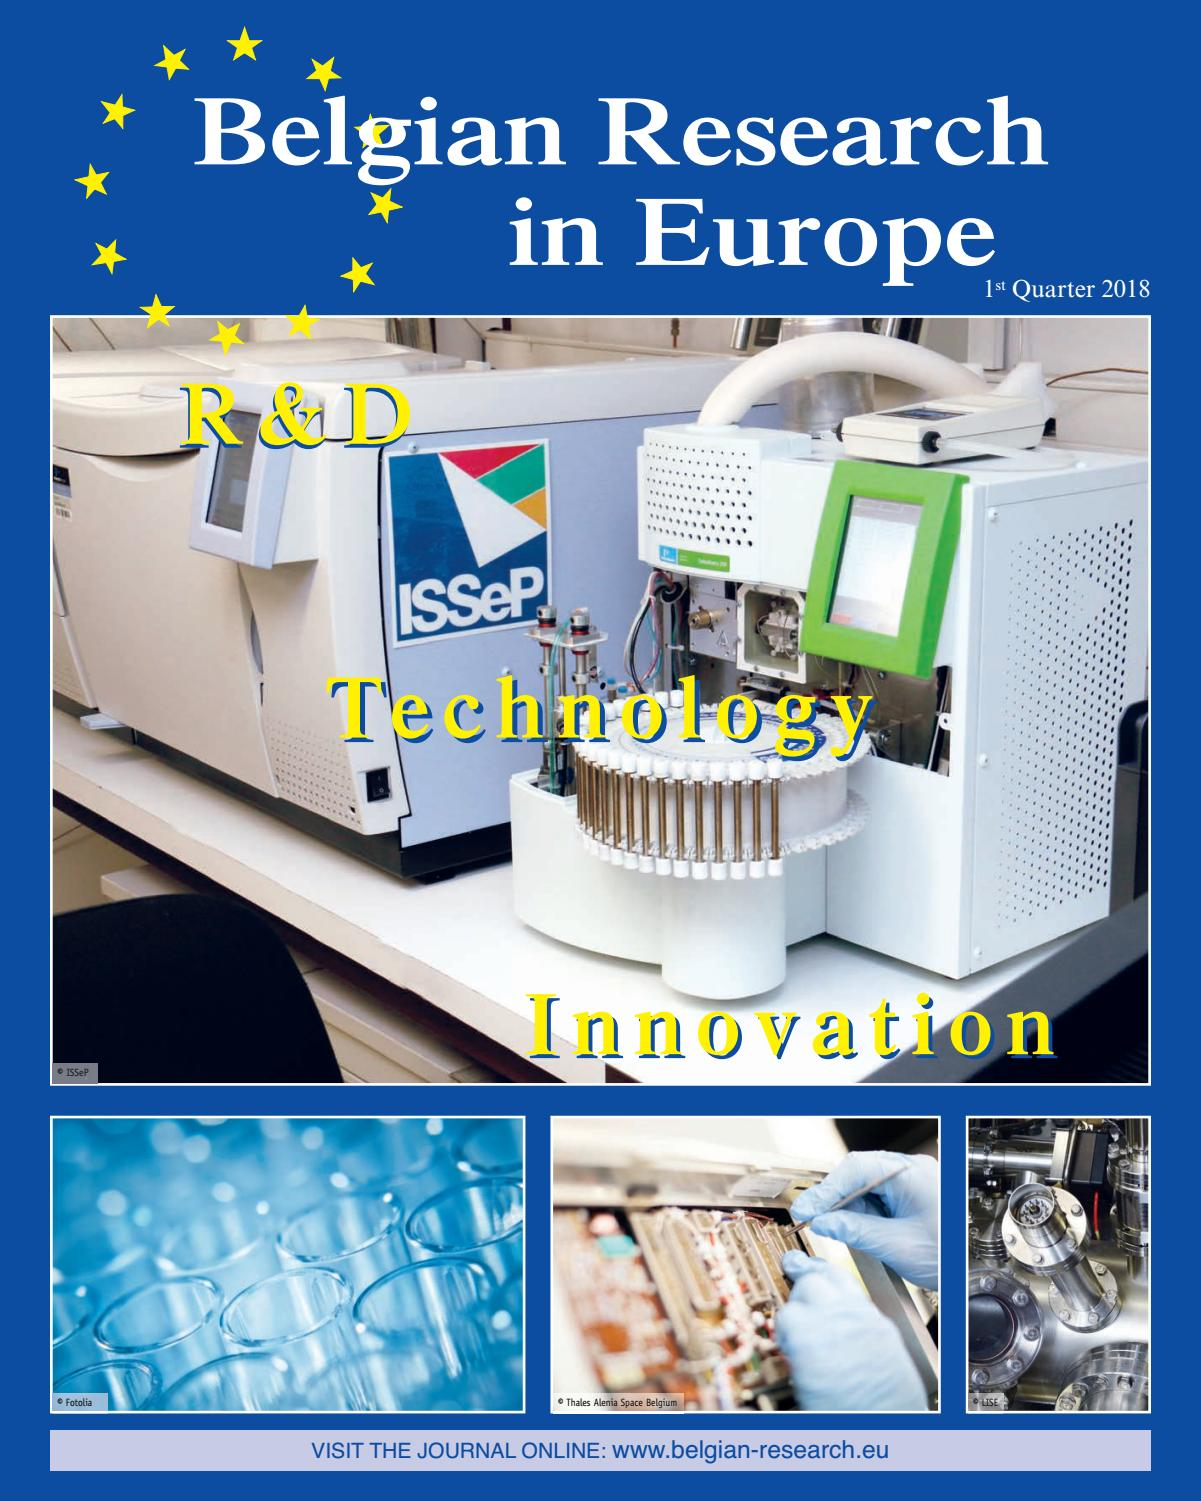 BELGIAN RESEARCH 2018 by Offset5 - issuu